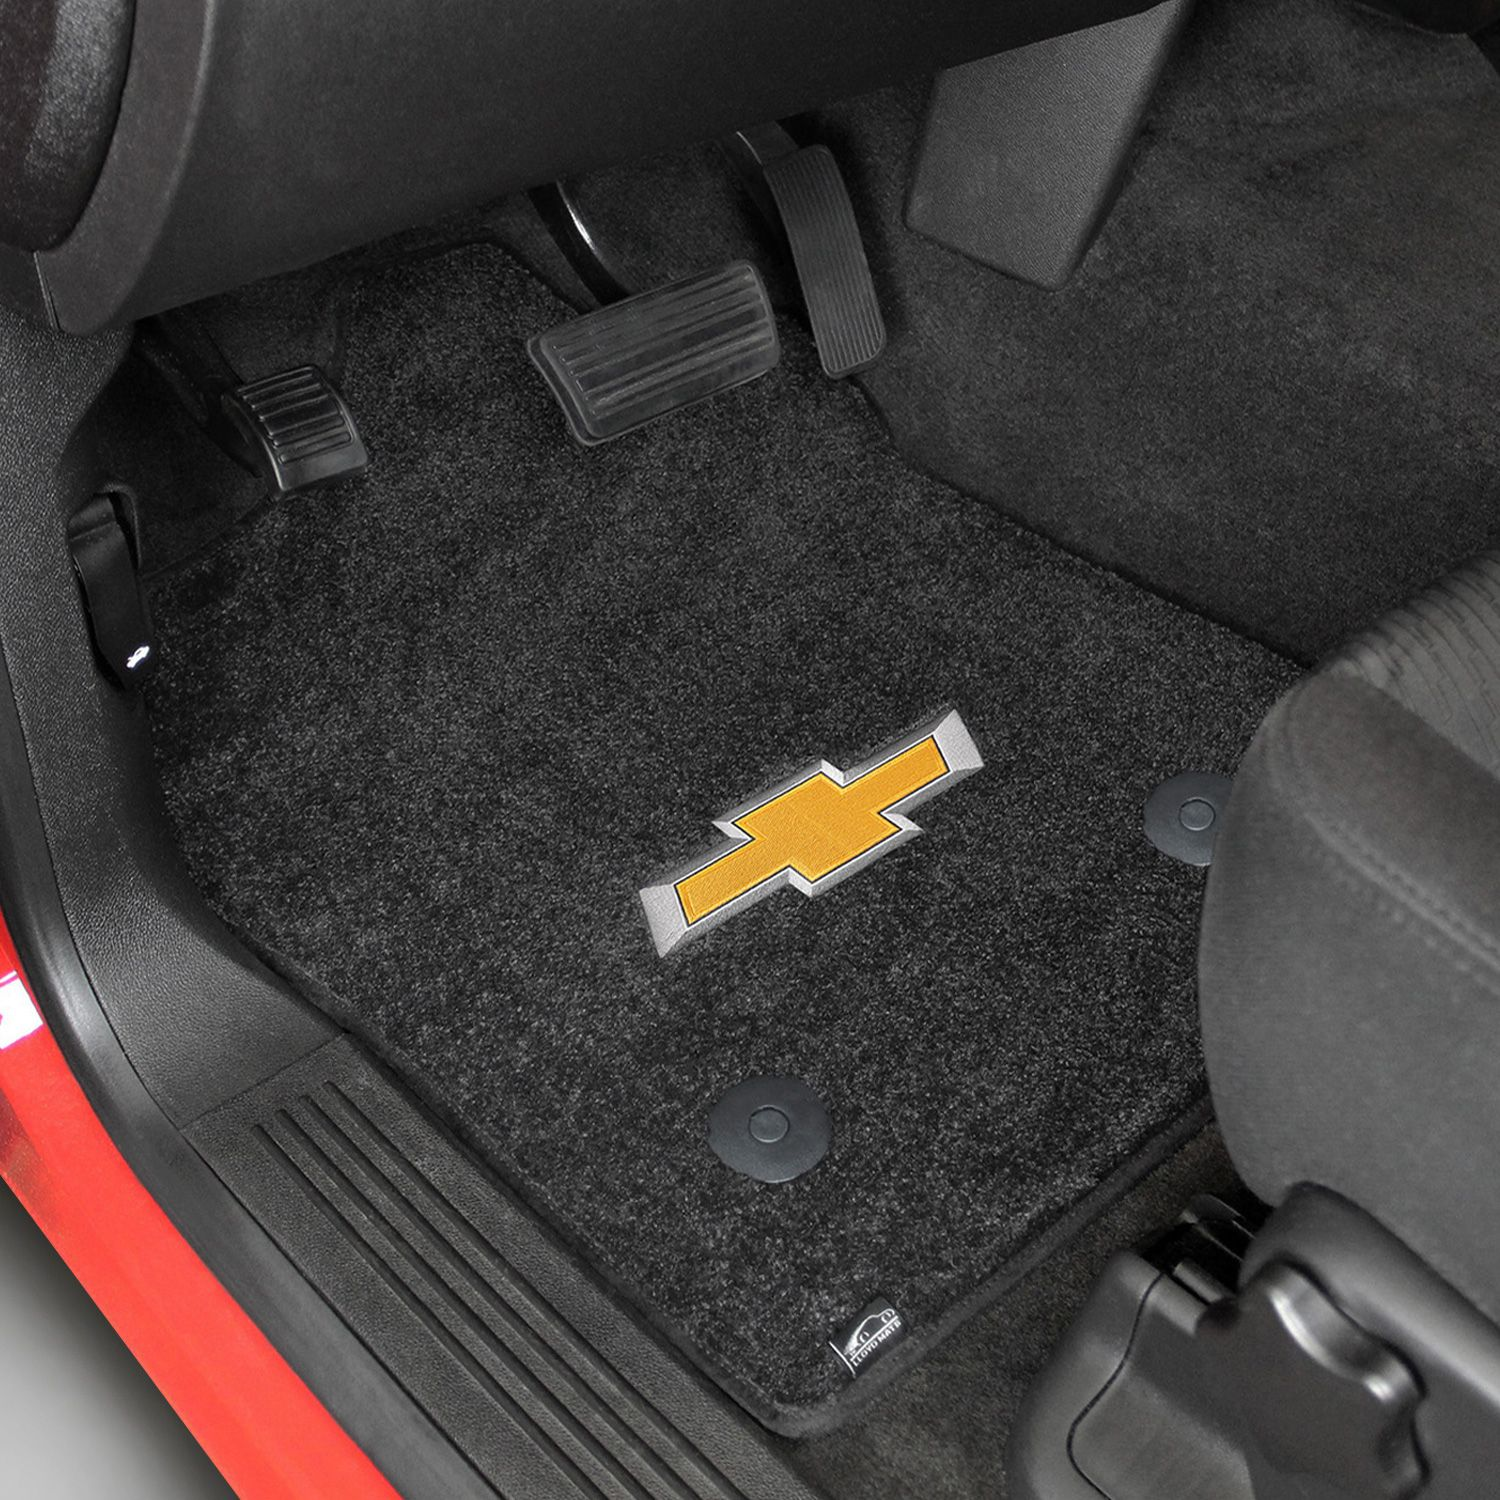 subwoofer youtube lloyd shaker mat carpeted lloyds watch trunk with car mustang black mats logo shelby